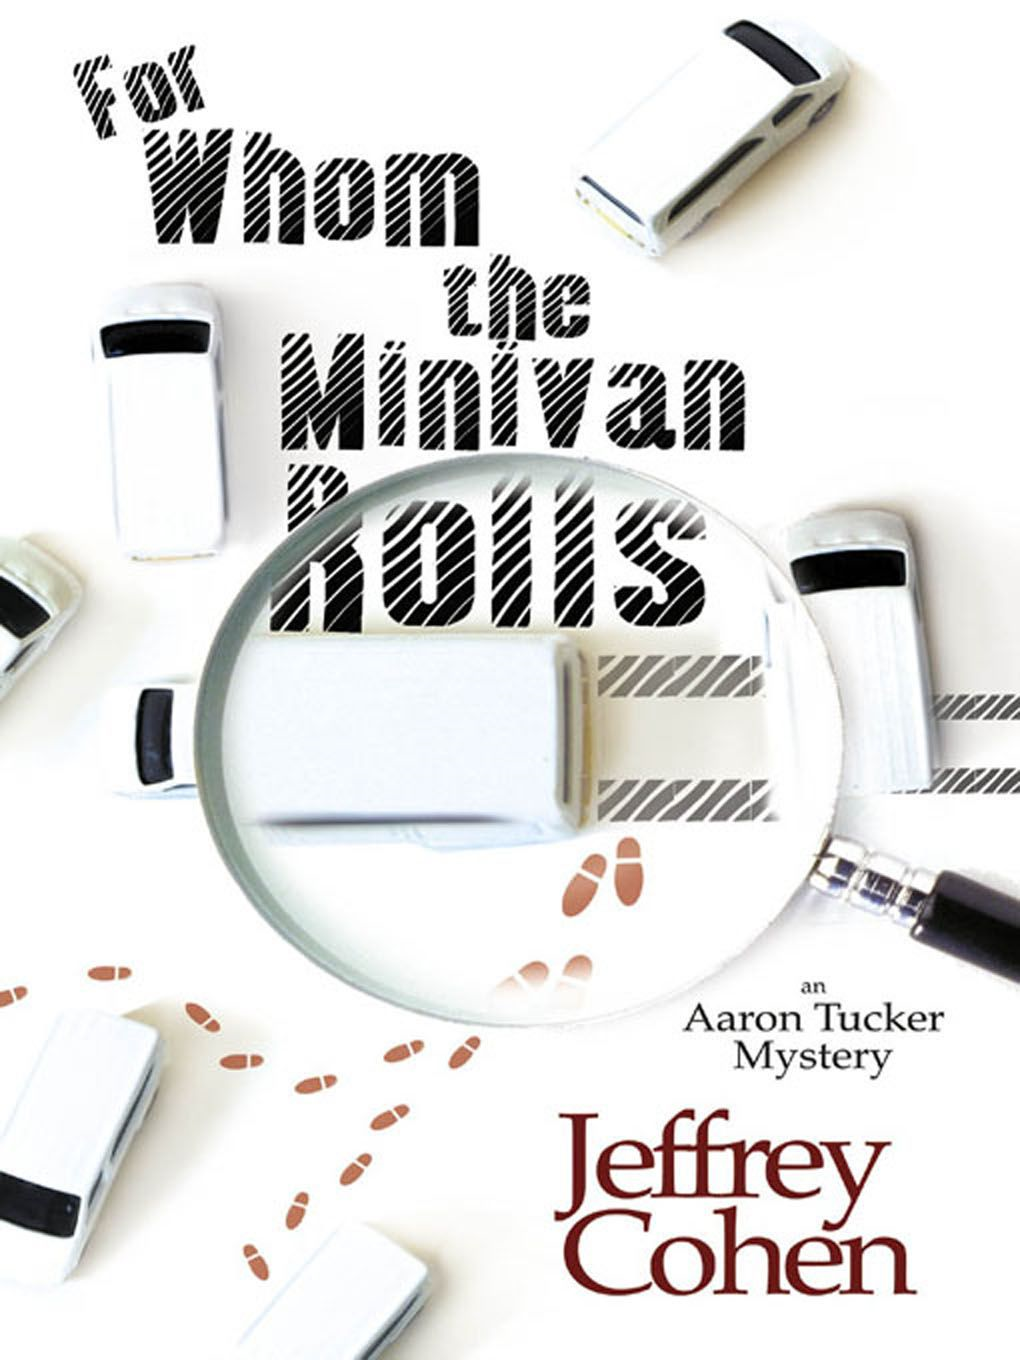 For Whom The Minivan Rolls: An Aaron Tucker Mystery By: Jeffrey Cohen